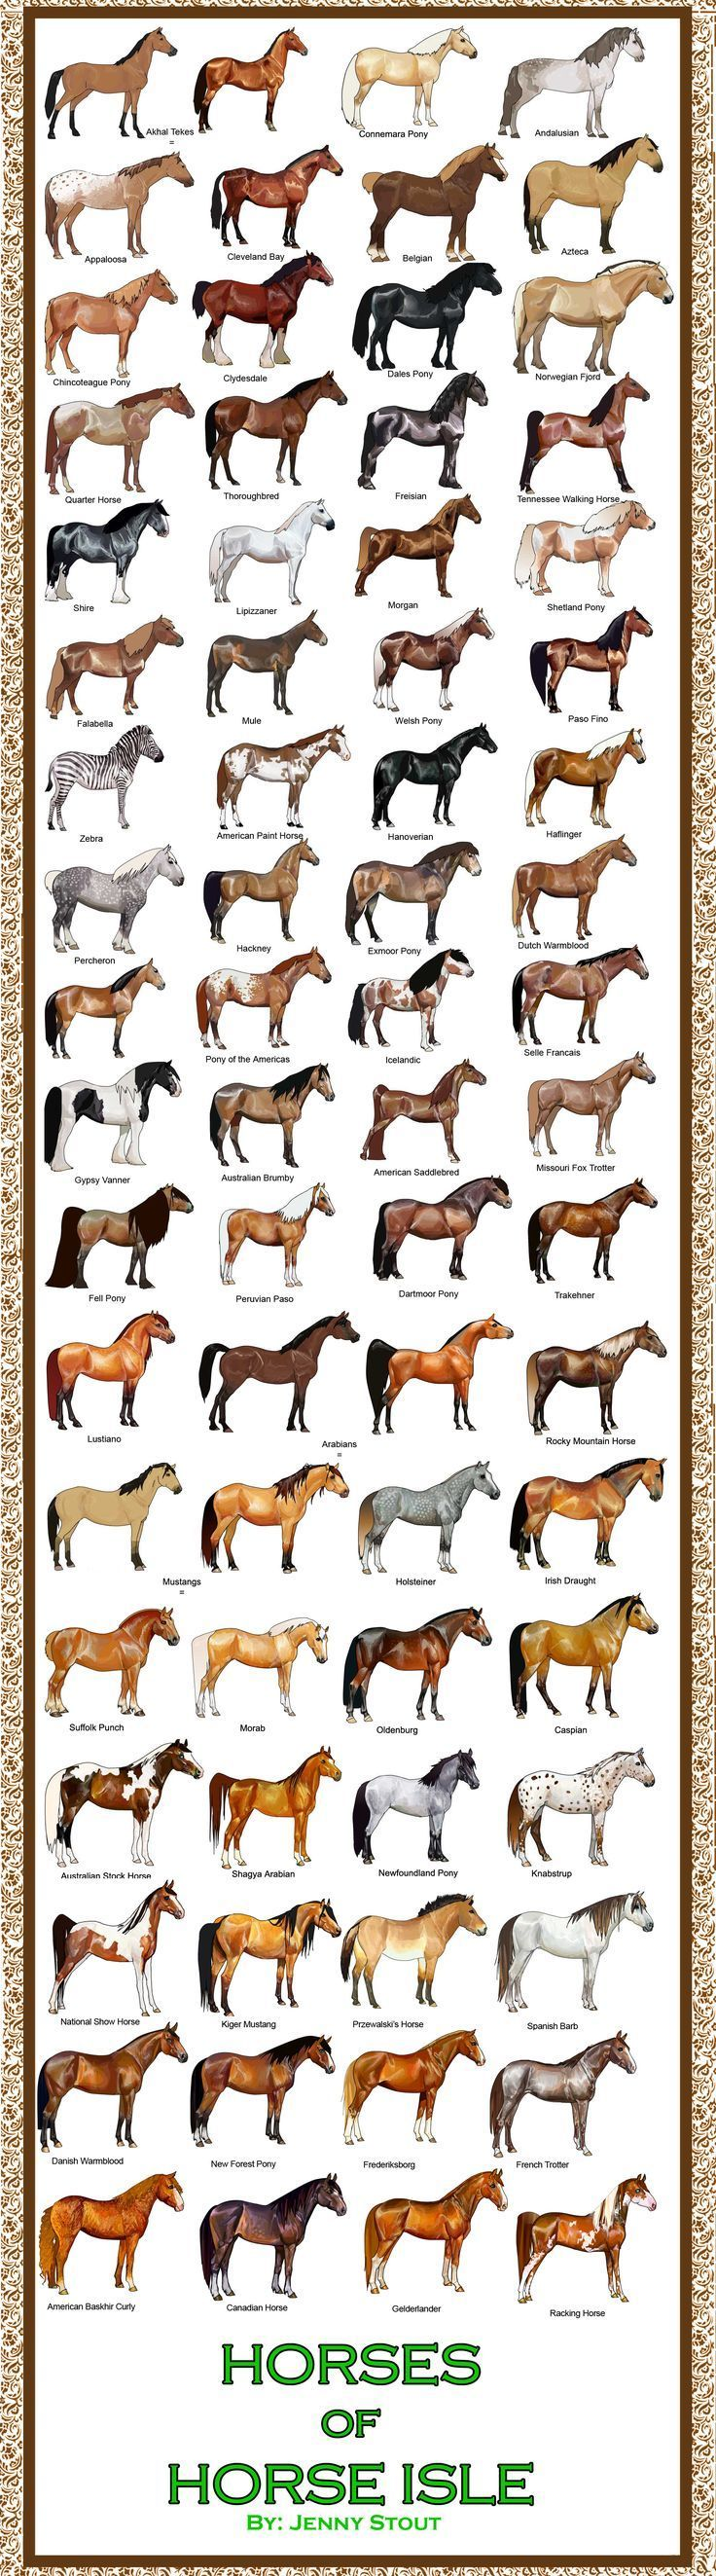 #horseriding #horserider #equine horse breeds with examples | ... come in all shapes and size, Mongolian horses being a smaller breed